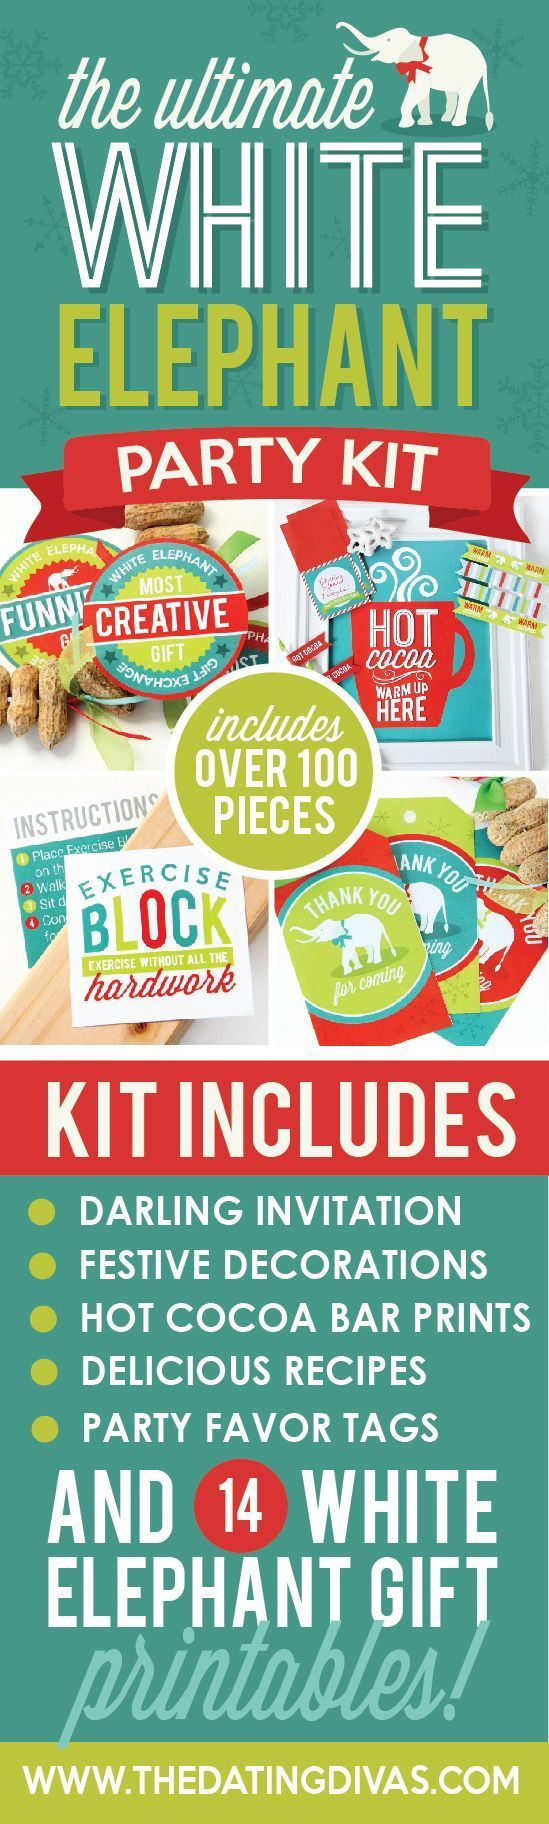 white elephant party kit the best ideas for a funny gift exchange party this christmas